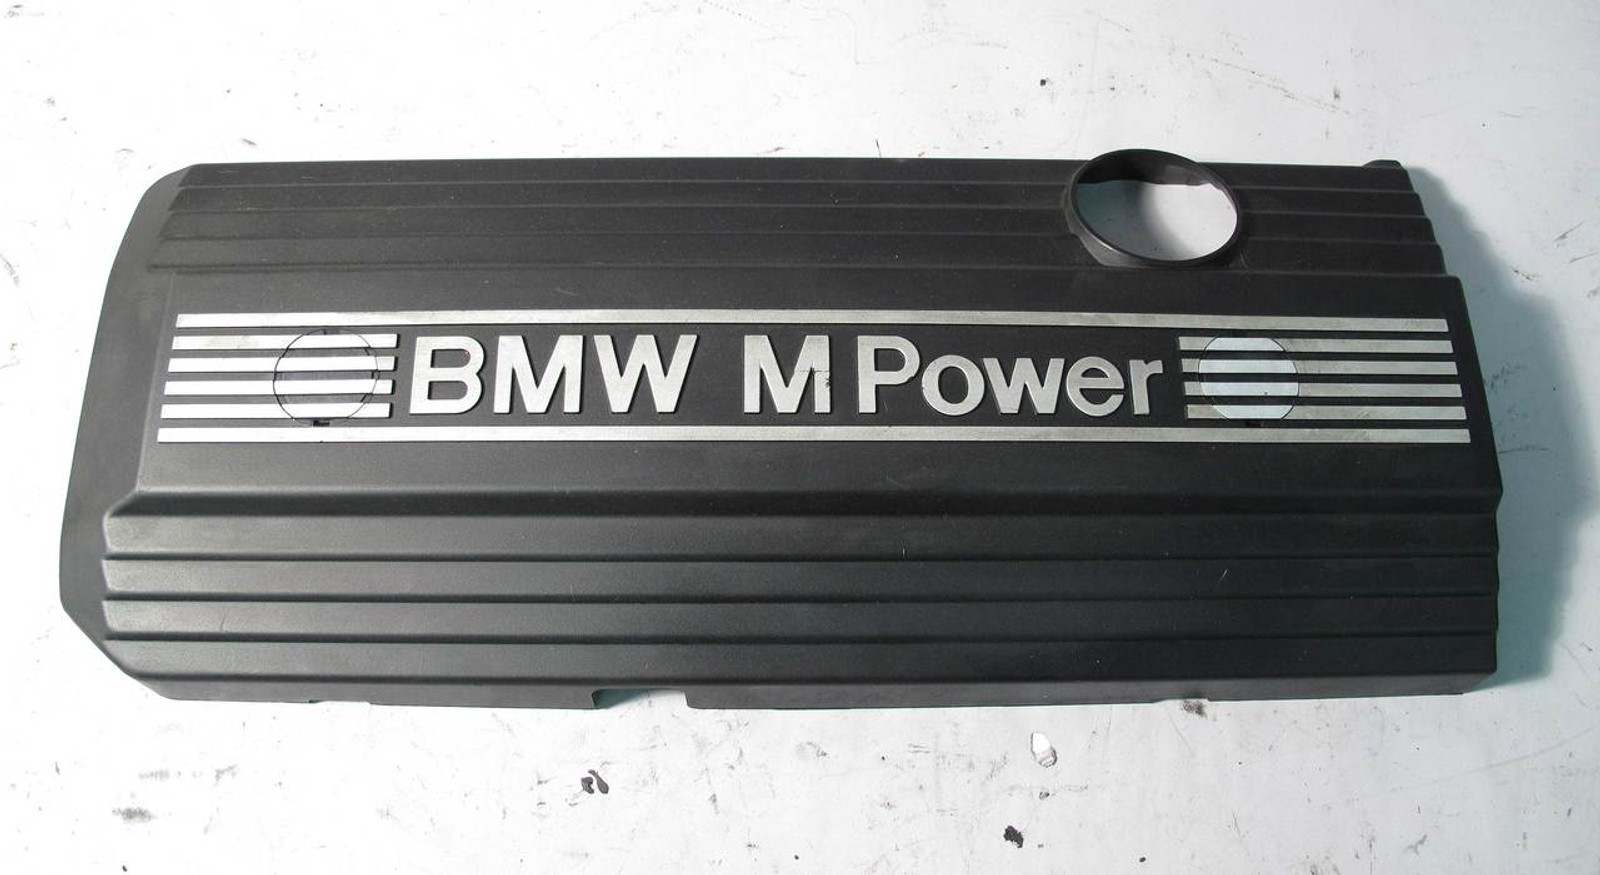 BMW S52 Plastic Engine Cover M-Power 1996-2000 E36 M3 3 2 Z3 M3 2 USED OEM